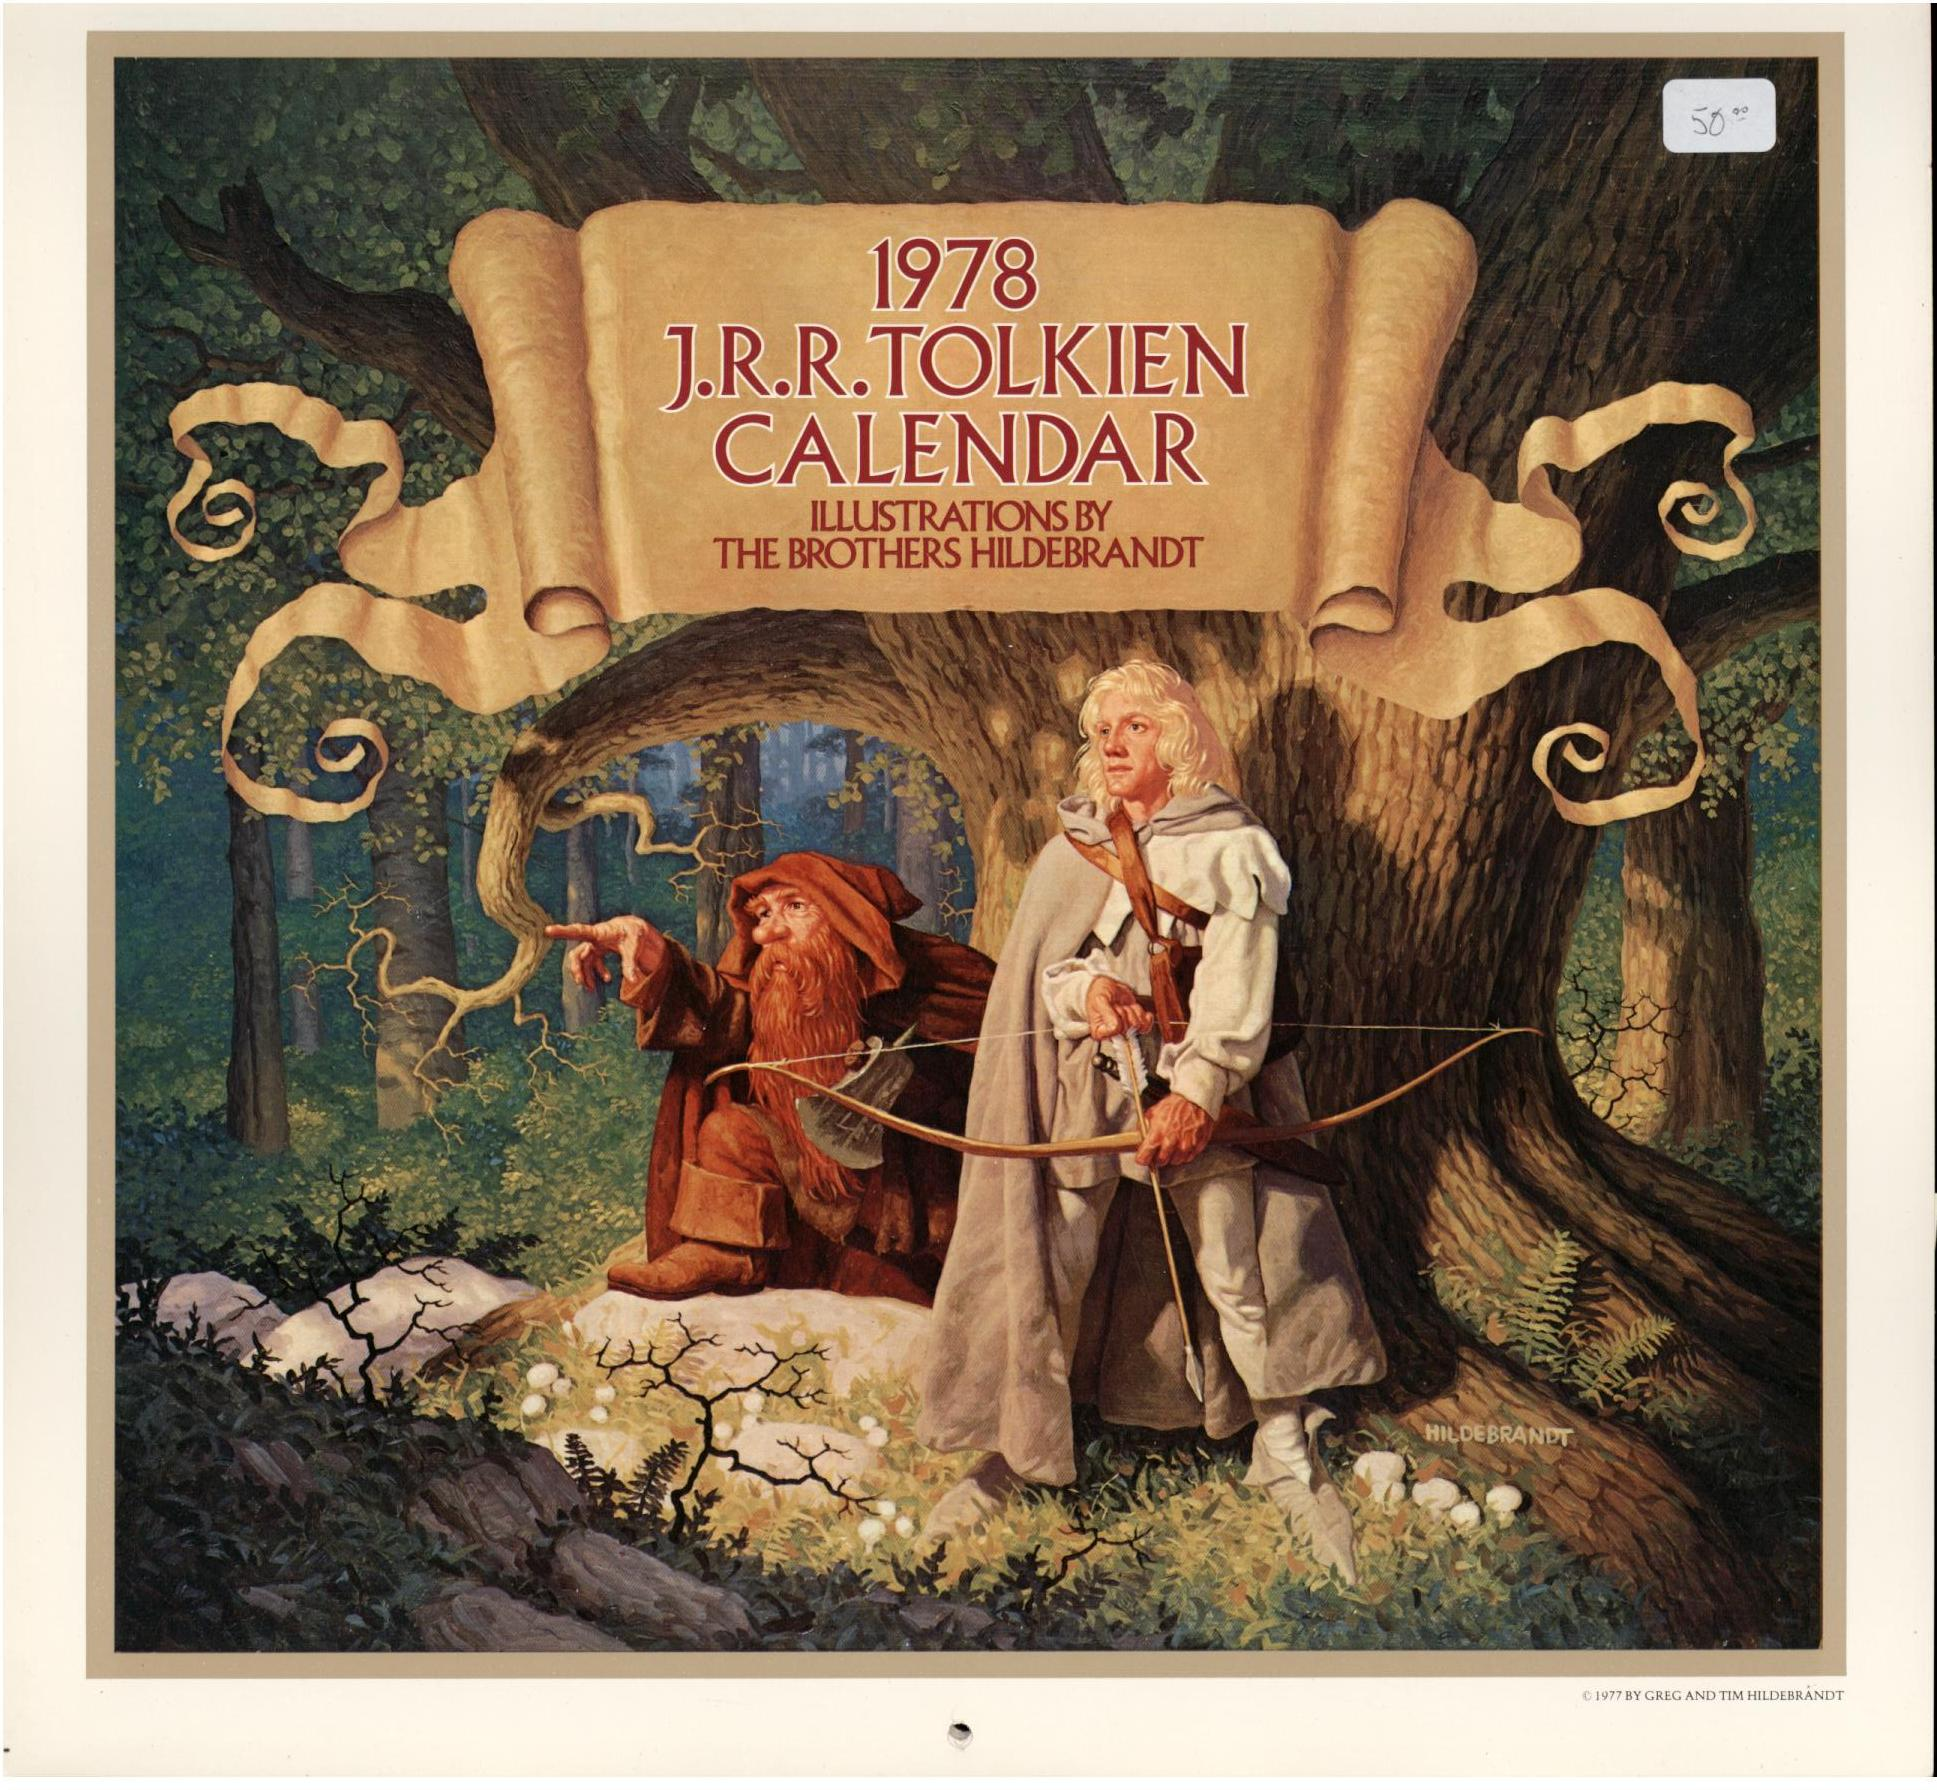 Image for 1978 J. R. R. TOLKIEN CALENDAR (First Edition)